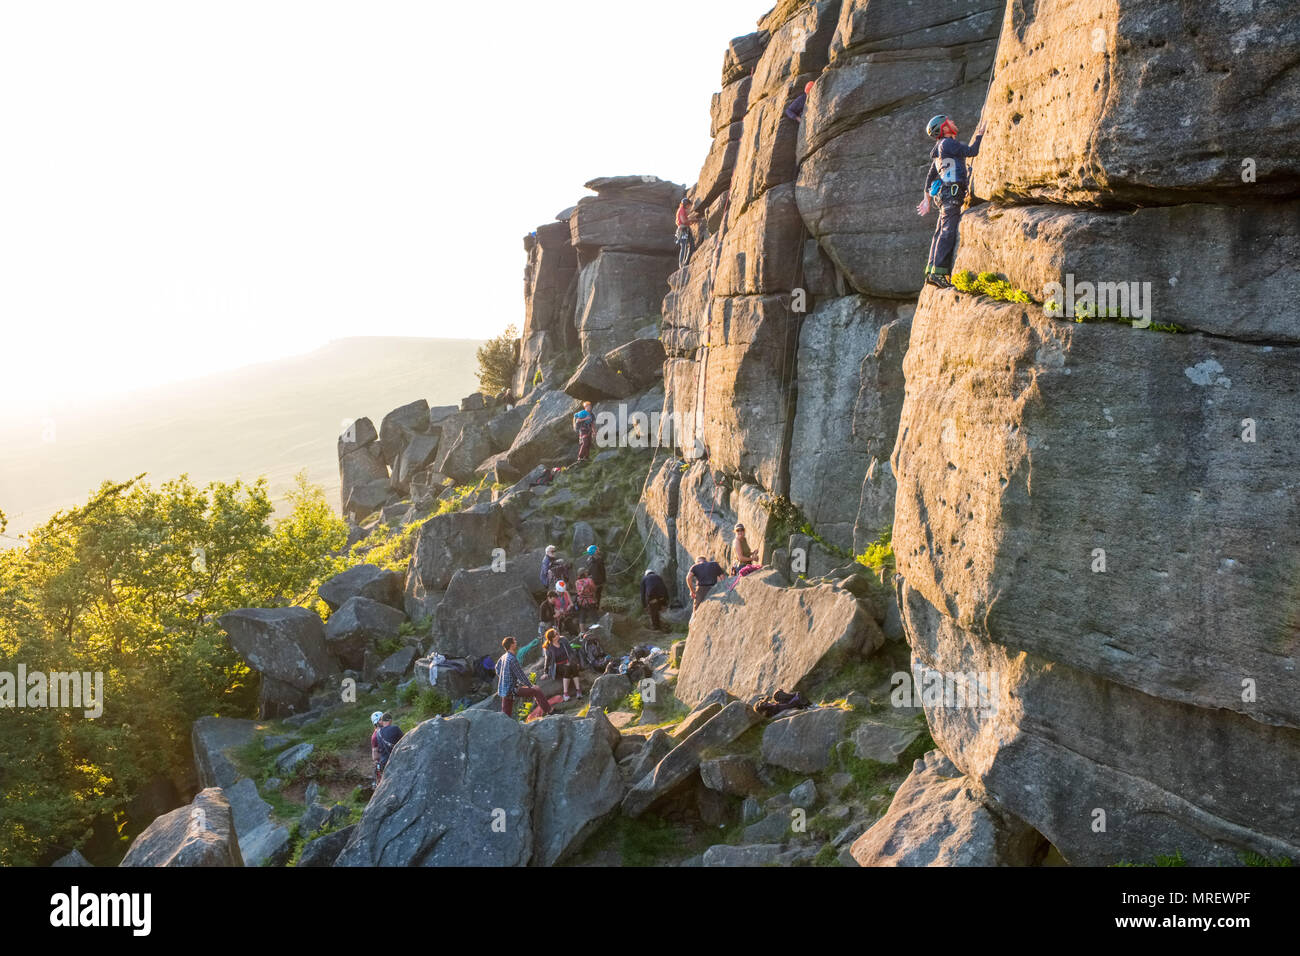 Rock climbing at the Paradise Wall area of Stanage in the Peak District National Park, UK - Stock Image